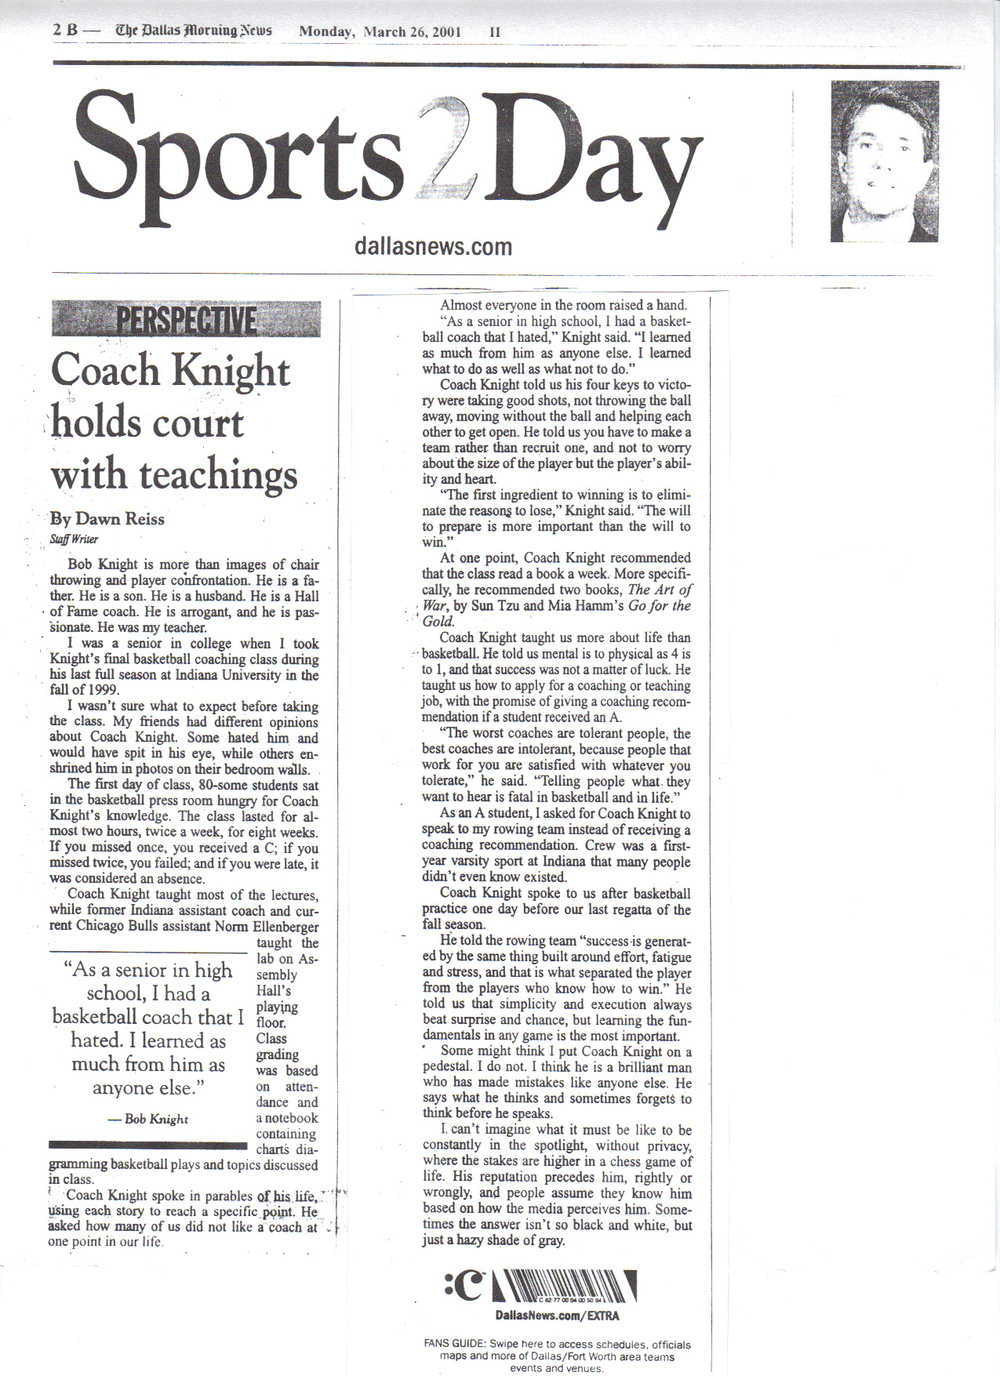 Bob Knight is more than images of chair throwing and player confrontations. He is a father. He is a son. He is a husband. He is a Hall of Fame coach. He is arrogant, and he is passionate. He was my teacher.  I was a senior in college when I took Knight's final basketball coaching class during his last full season at Indiana University.